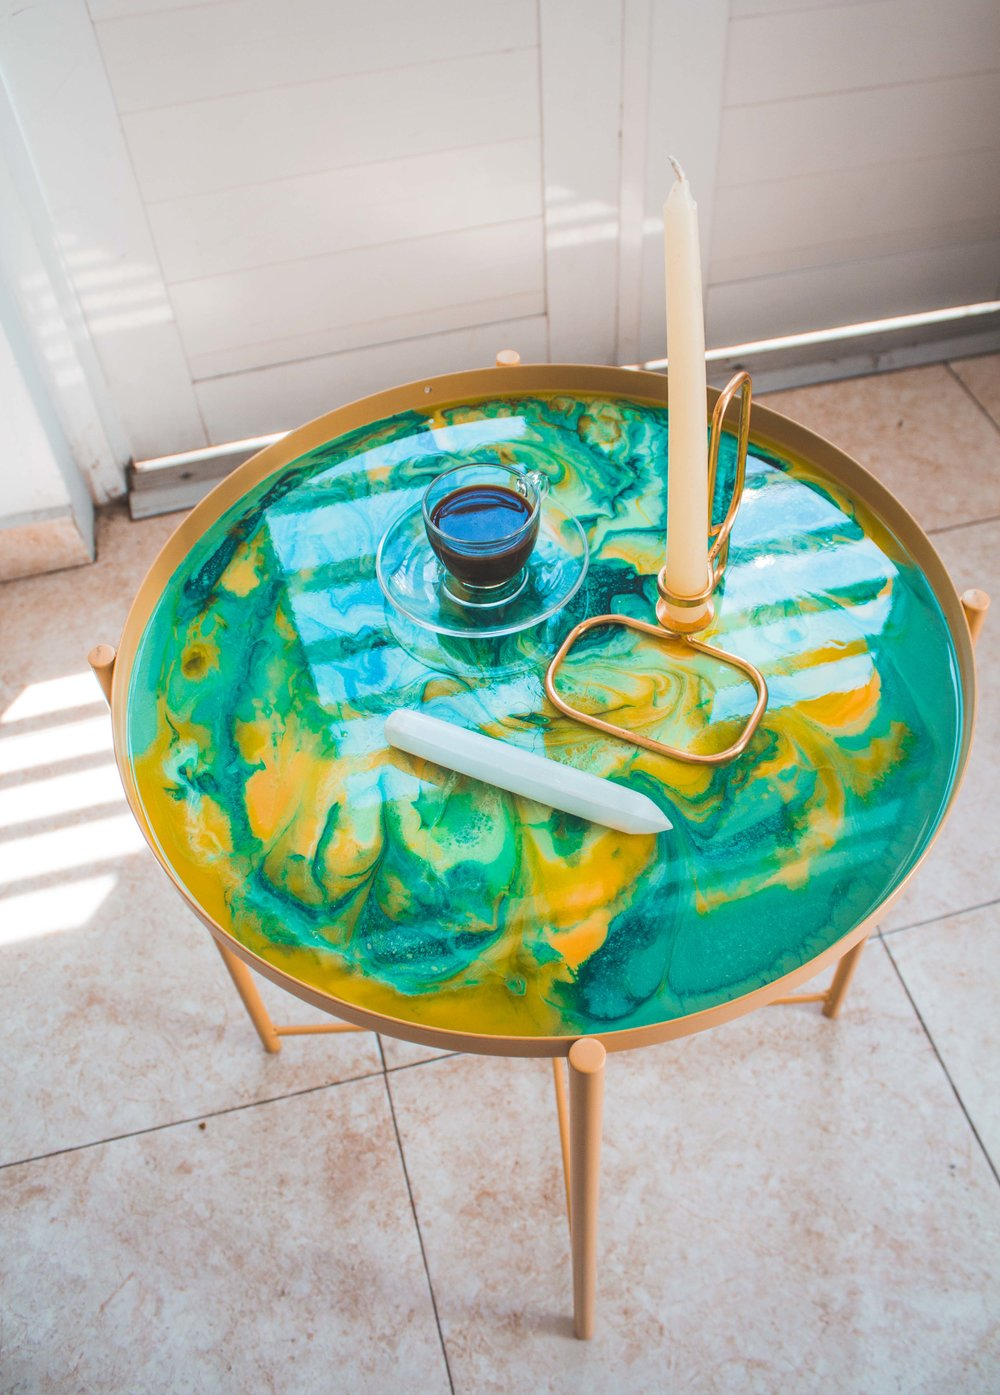 Upgrade your morning routine with this one of a kind resin art table.